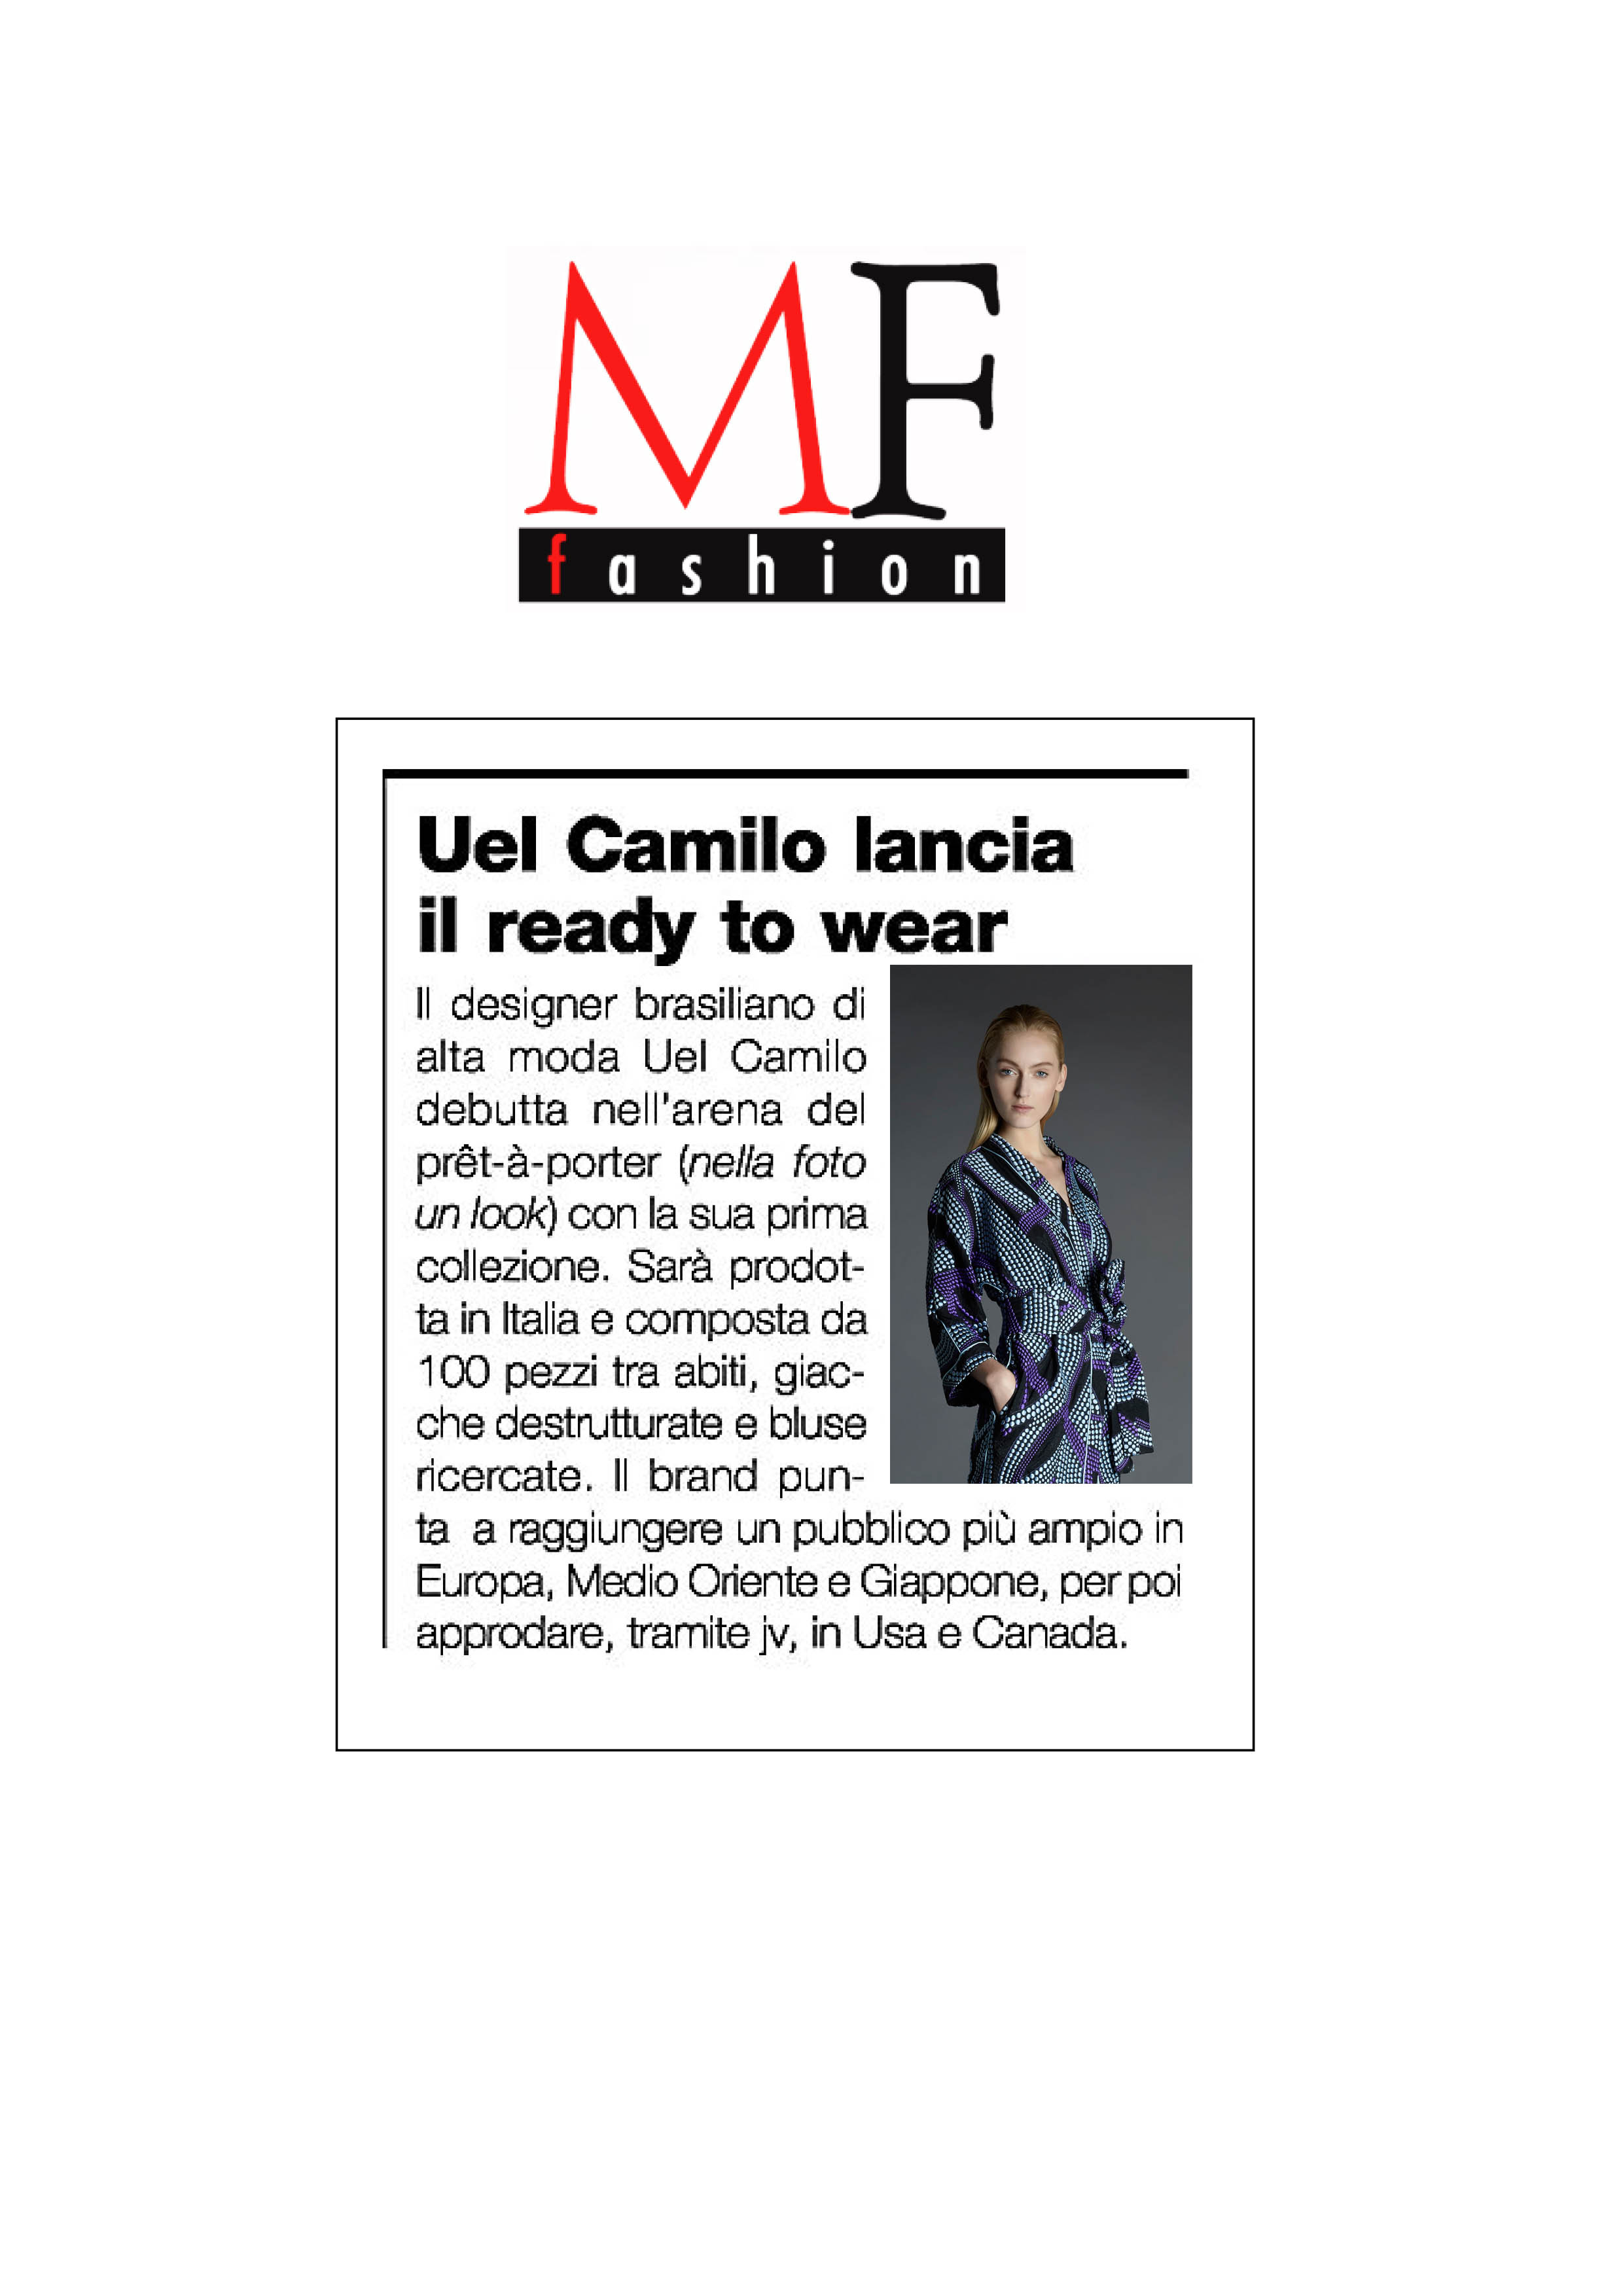 UEL CAMILO @MF FASHION